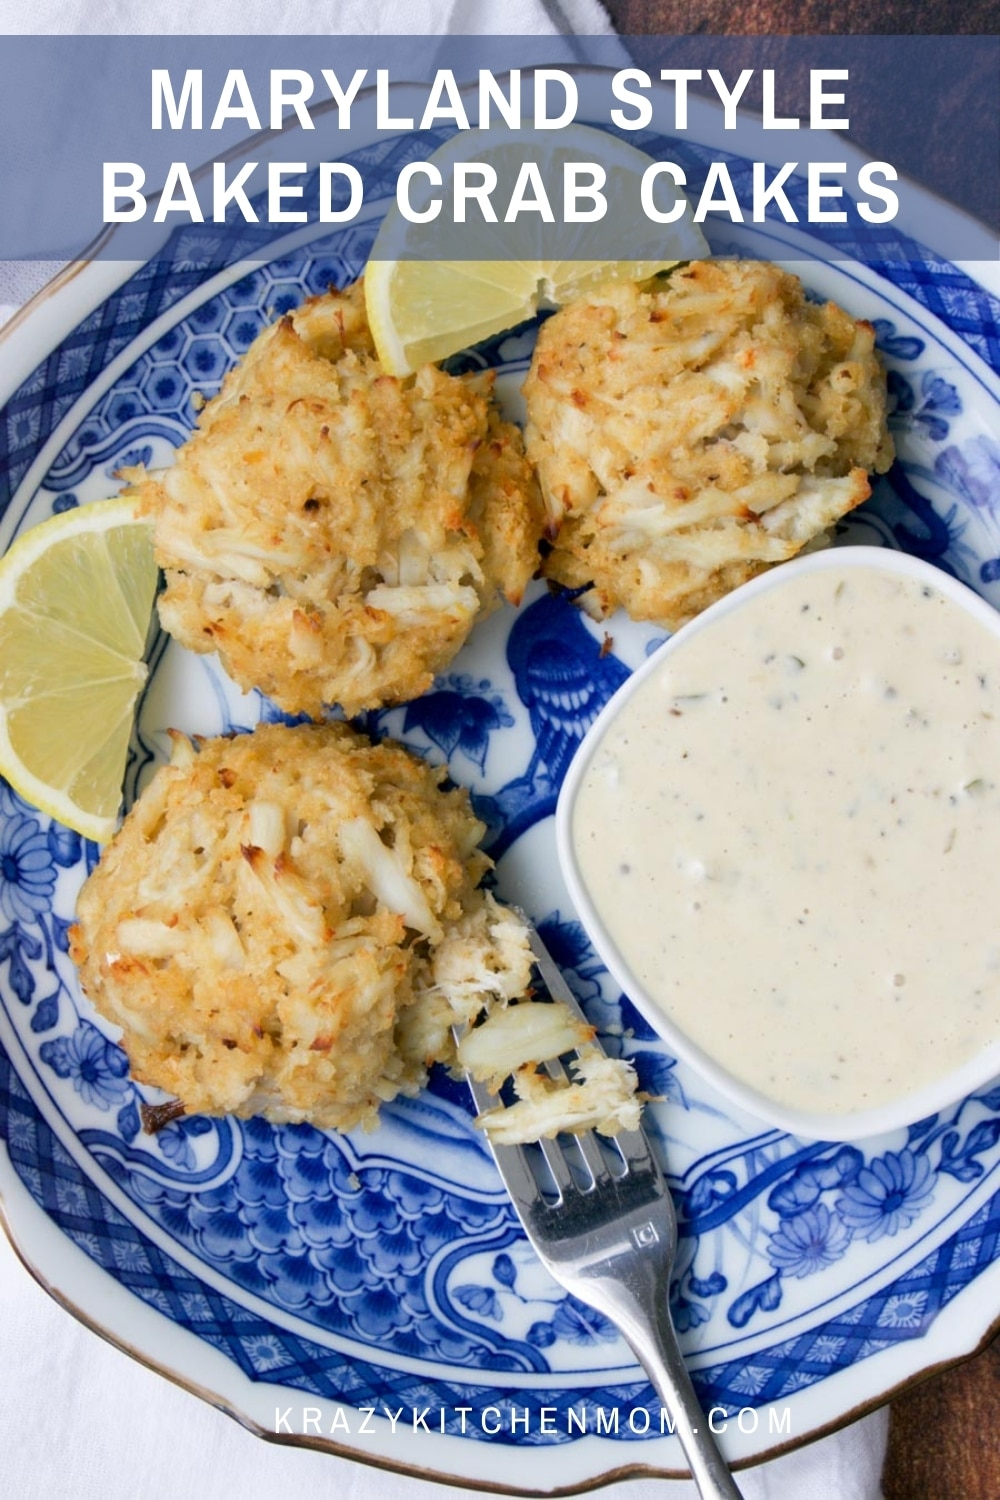 These lump-meat crab cakes are made with very little filler, letting the crab meat shine. Baked to perfection and served with a tasty remoulade. via @krazykitchenmom